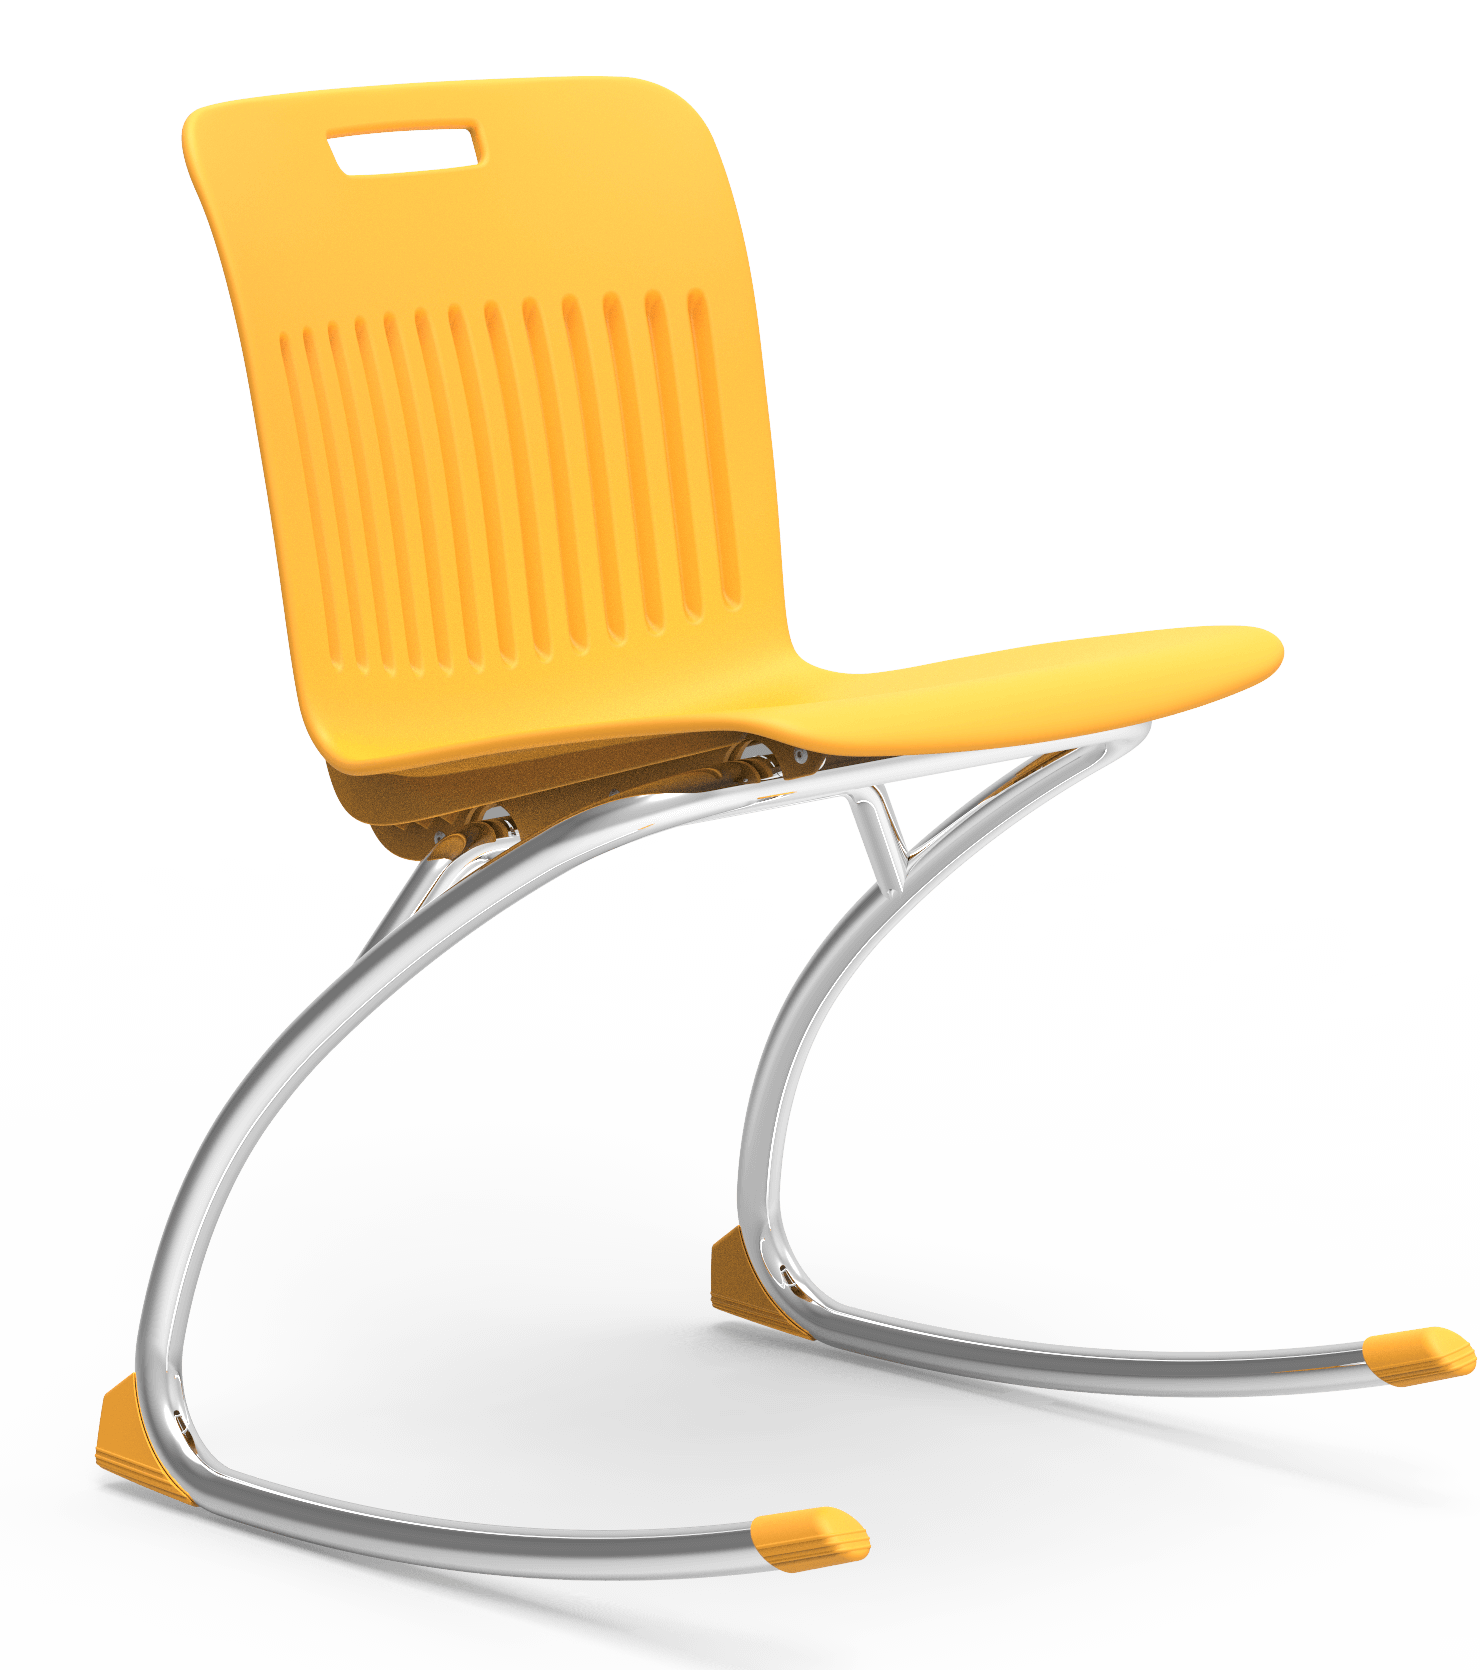 Pleasing Virco A Leading Manufacturer Of Office School Furniture Caraccident5 Cool Chair Designs And Ideas Caraccident5Info